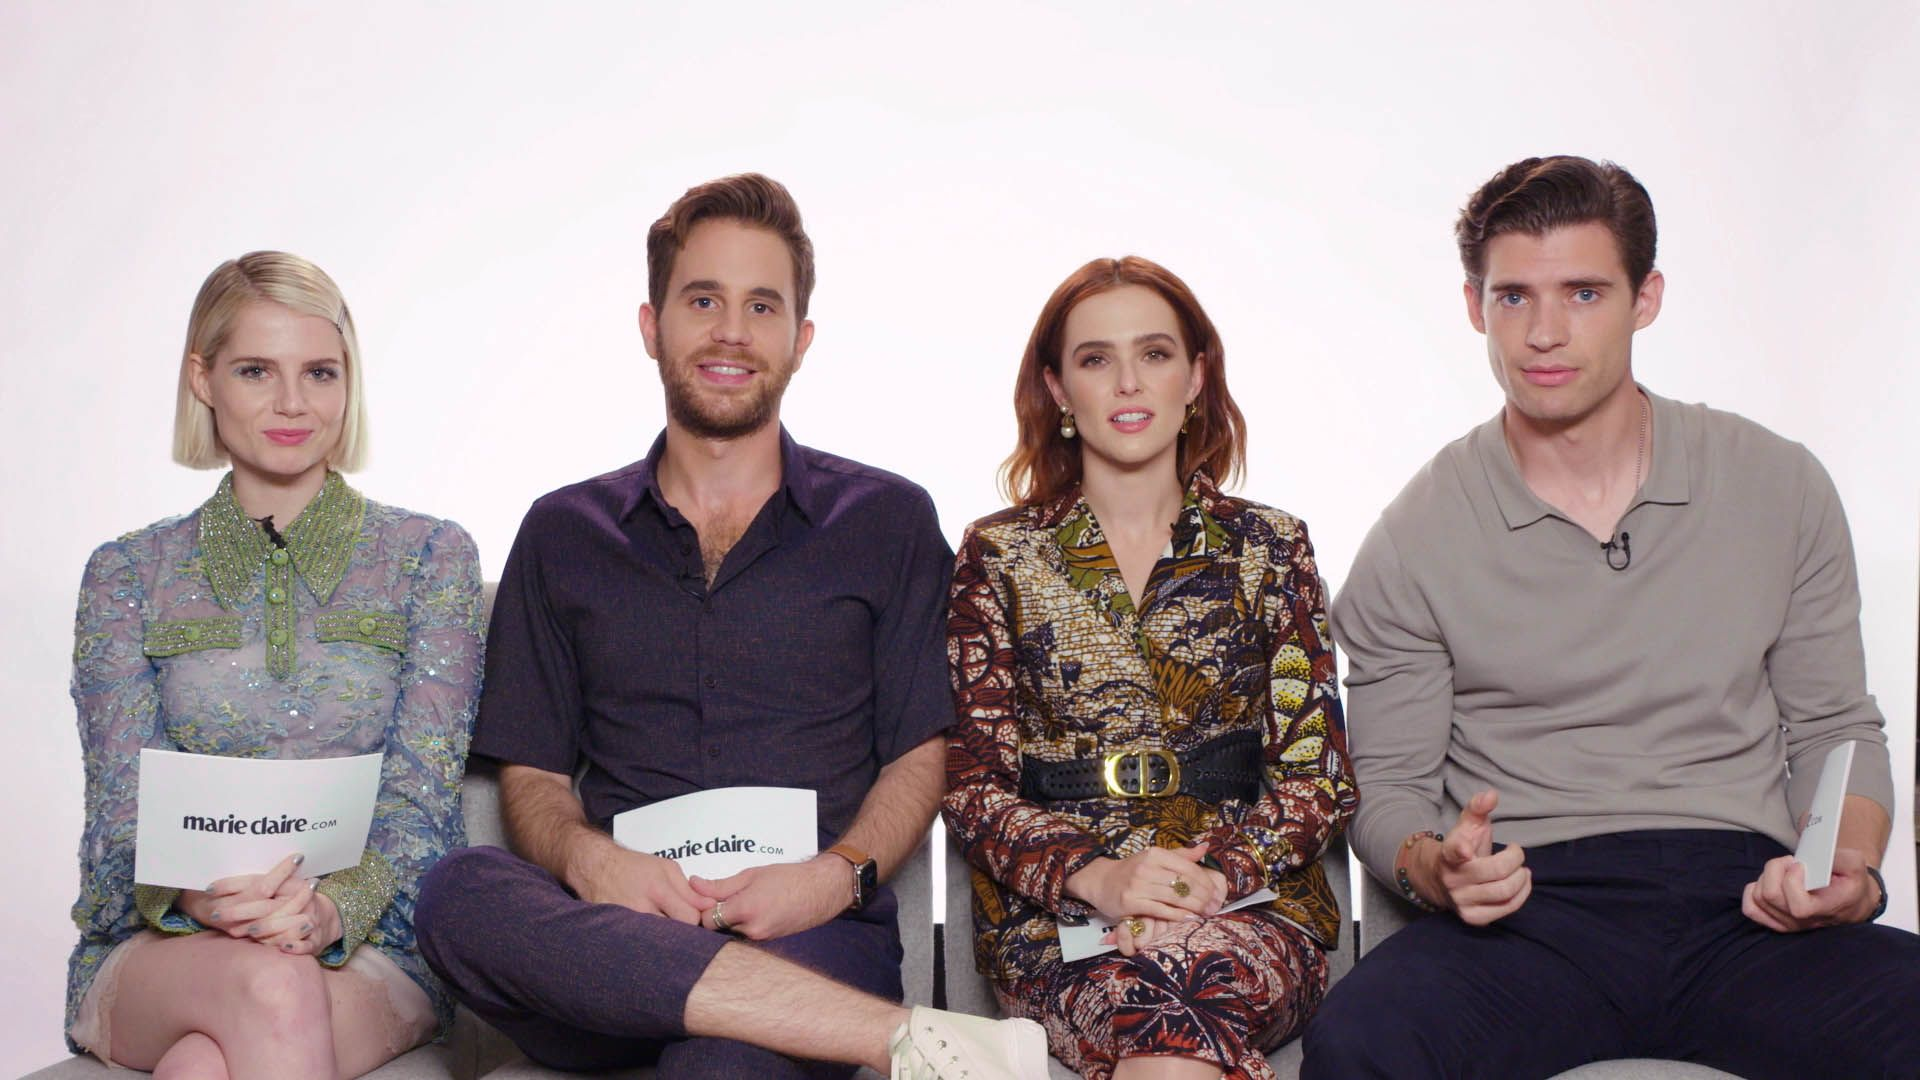 The Cast of 'The Politican' Plays 'How Well Do You Know Your Co-Star?'